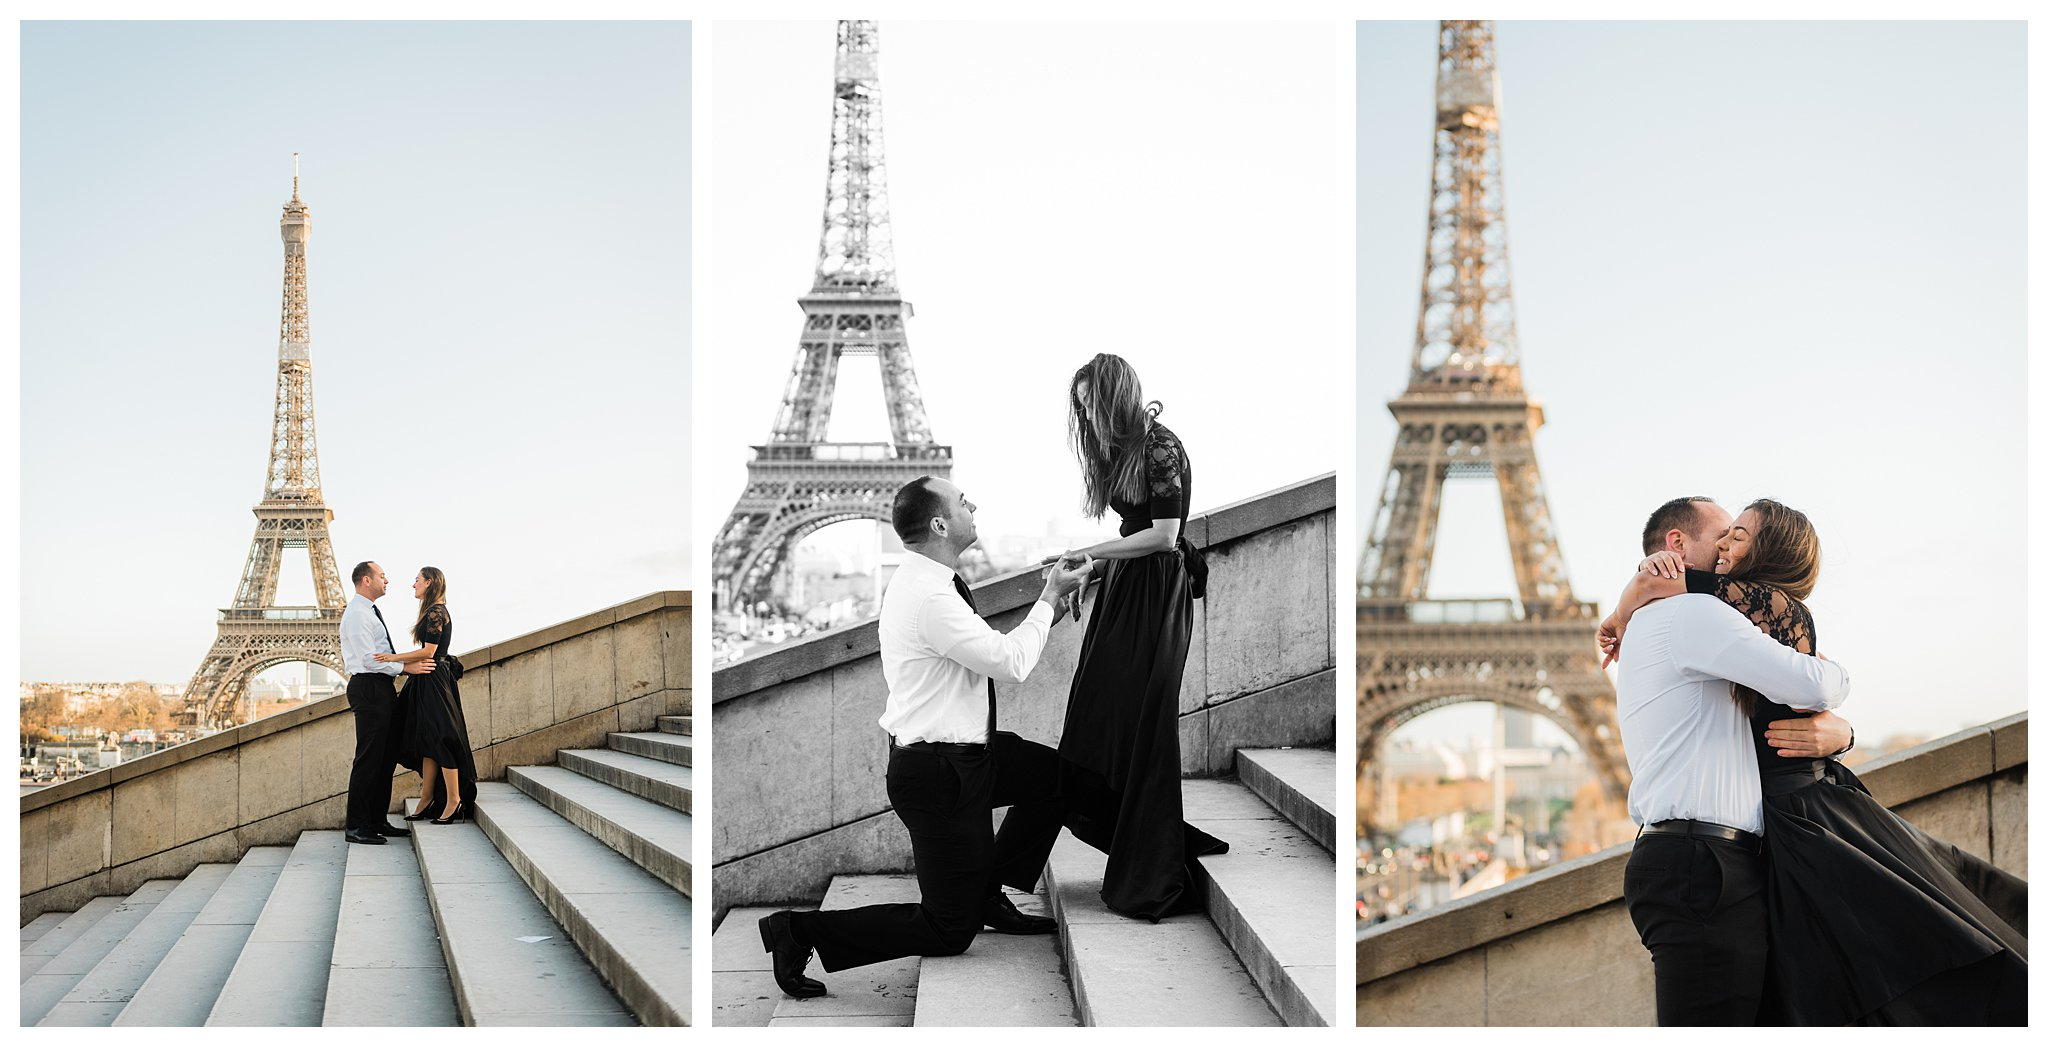 Jennifer and Yannick's Surprise Paris Proposal Photo Shoot at the Eiffel Tower - the moment he gets down on one knee